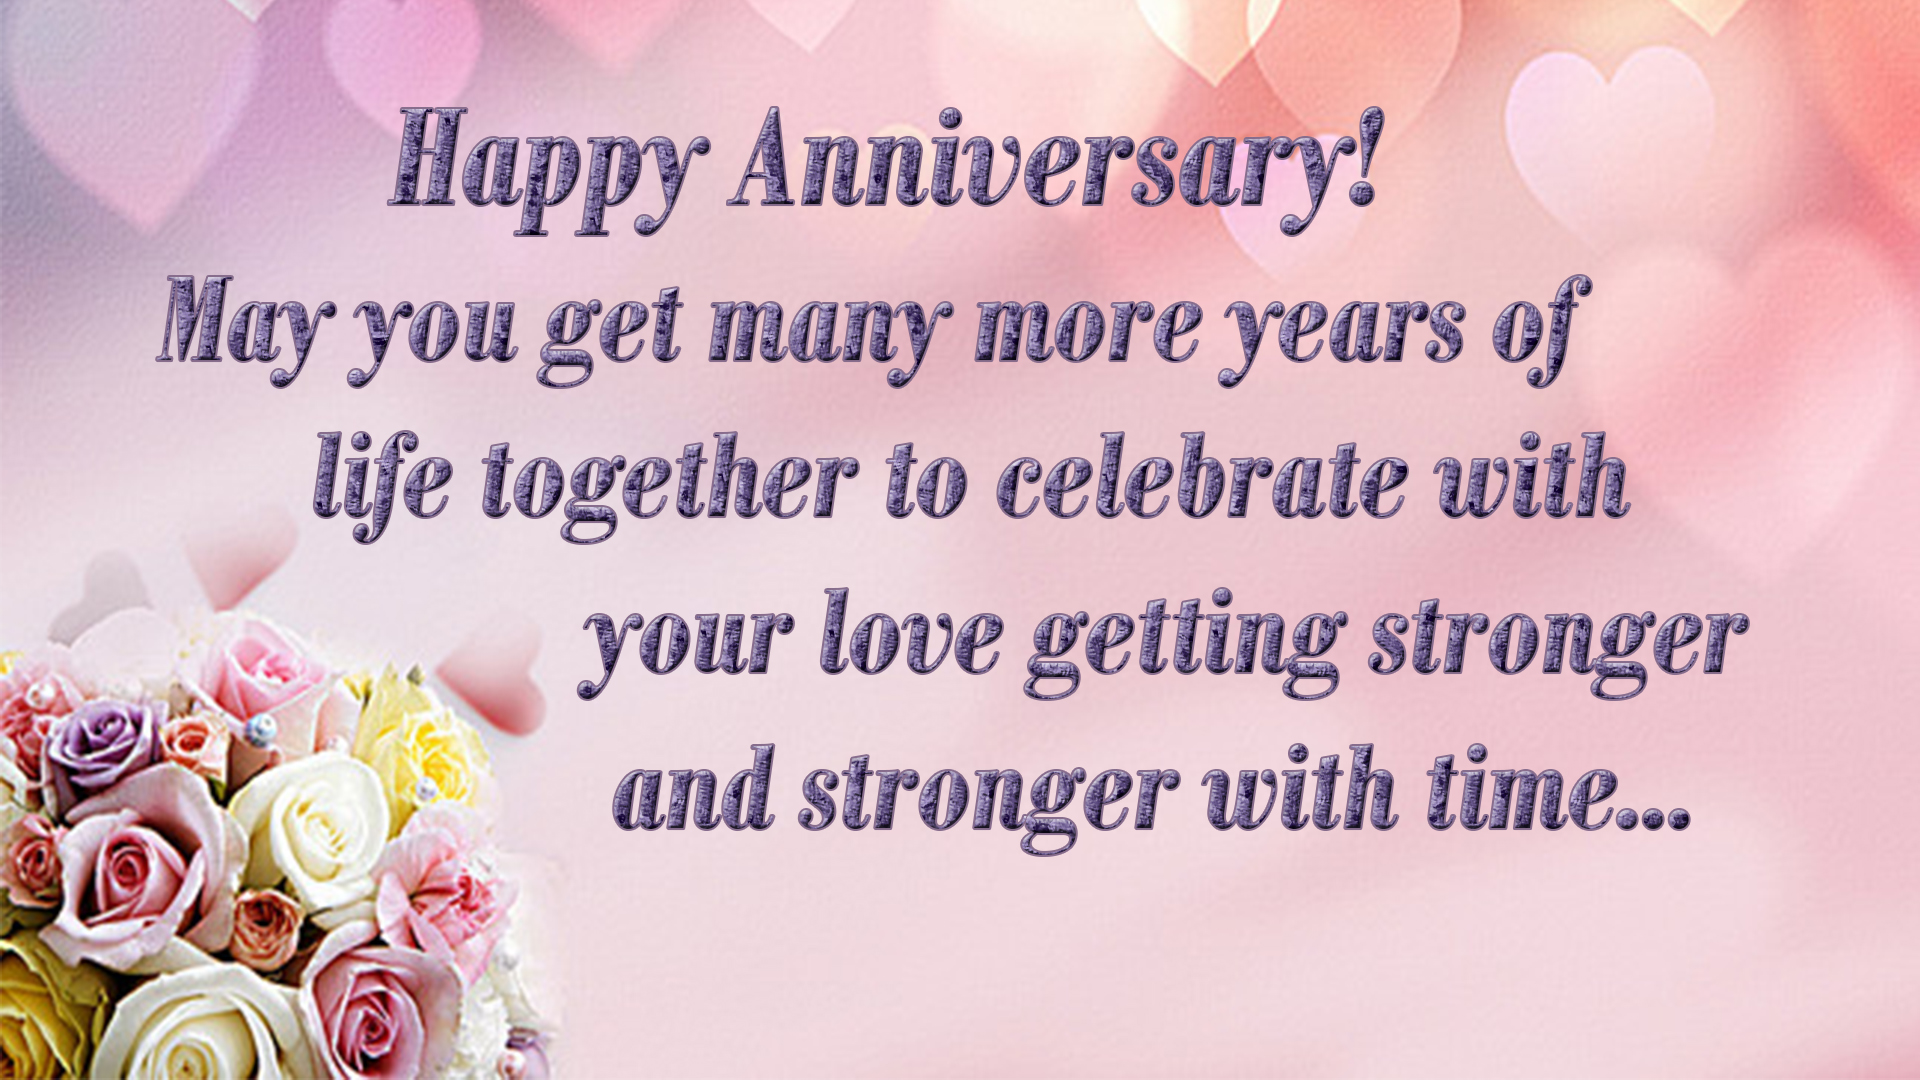 Anniversary Greetings Images 2018 Happy Anniversary Wishes